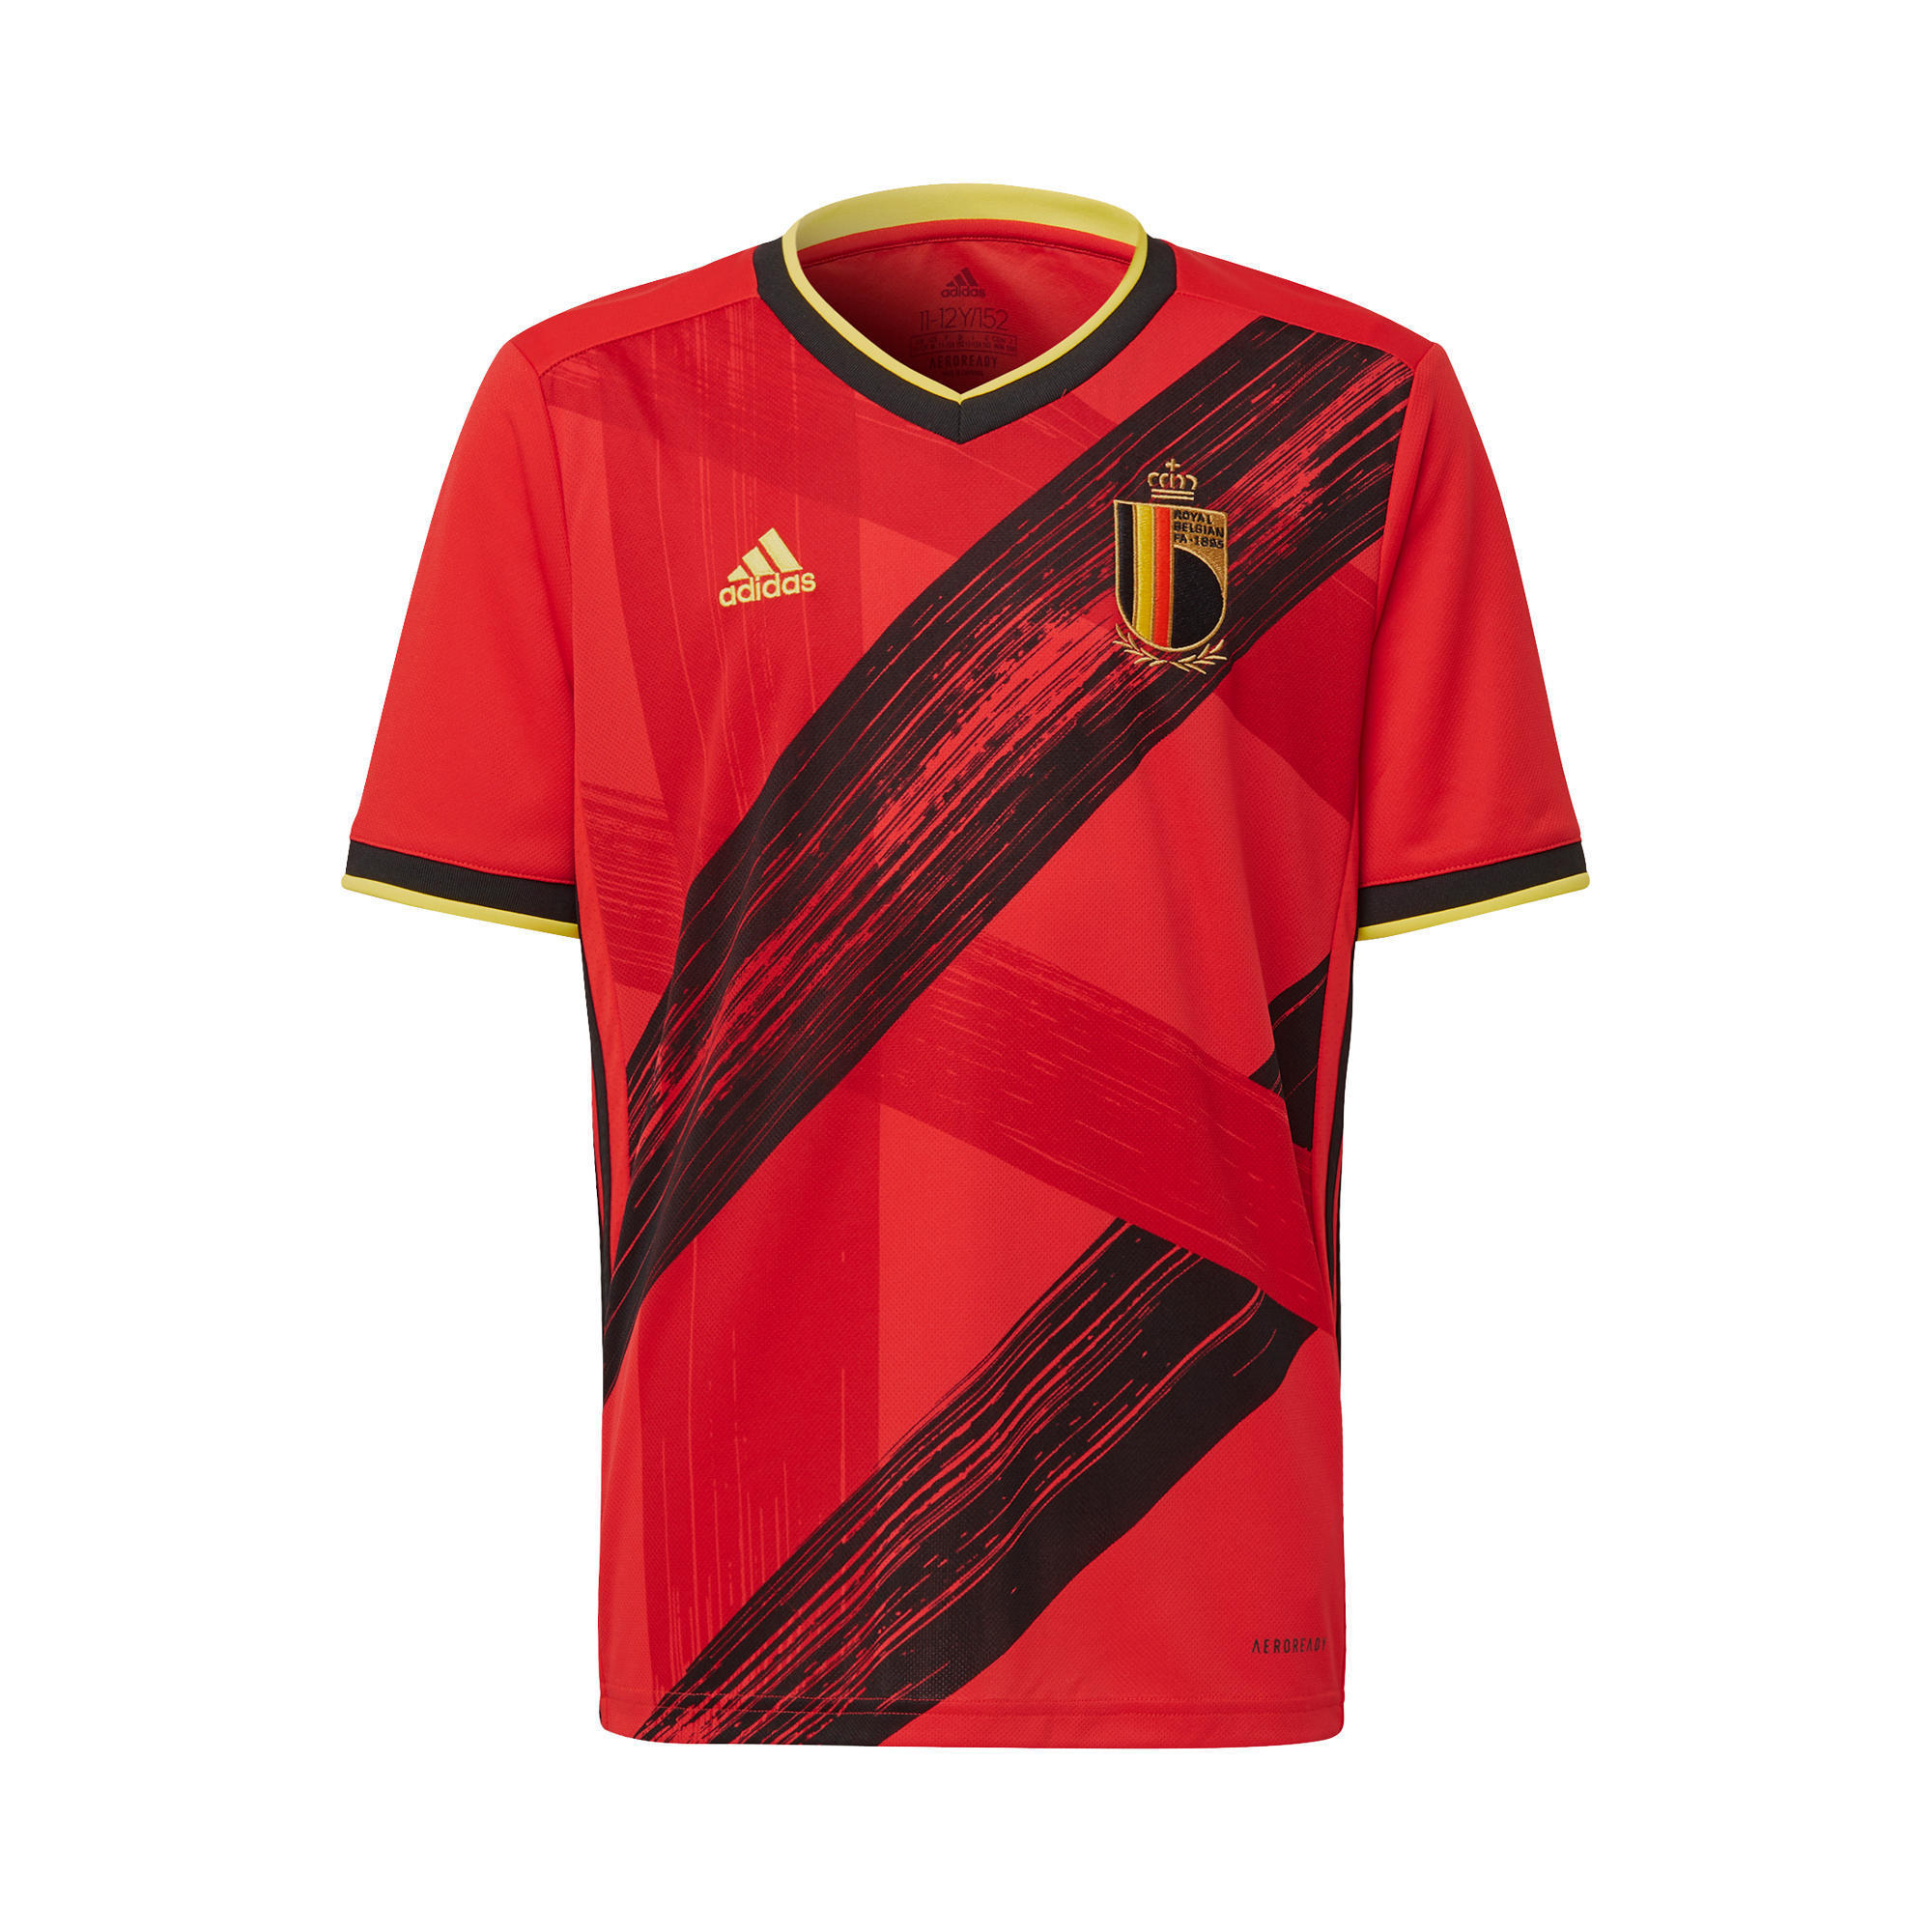 Maillot adidas <strong>replica</strong> belgique home adulte 2020 adidas